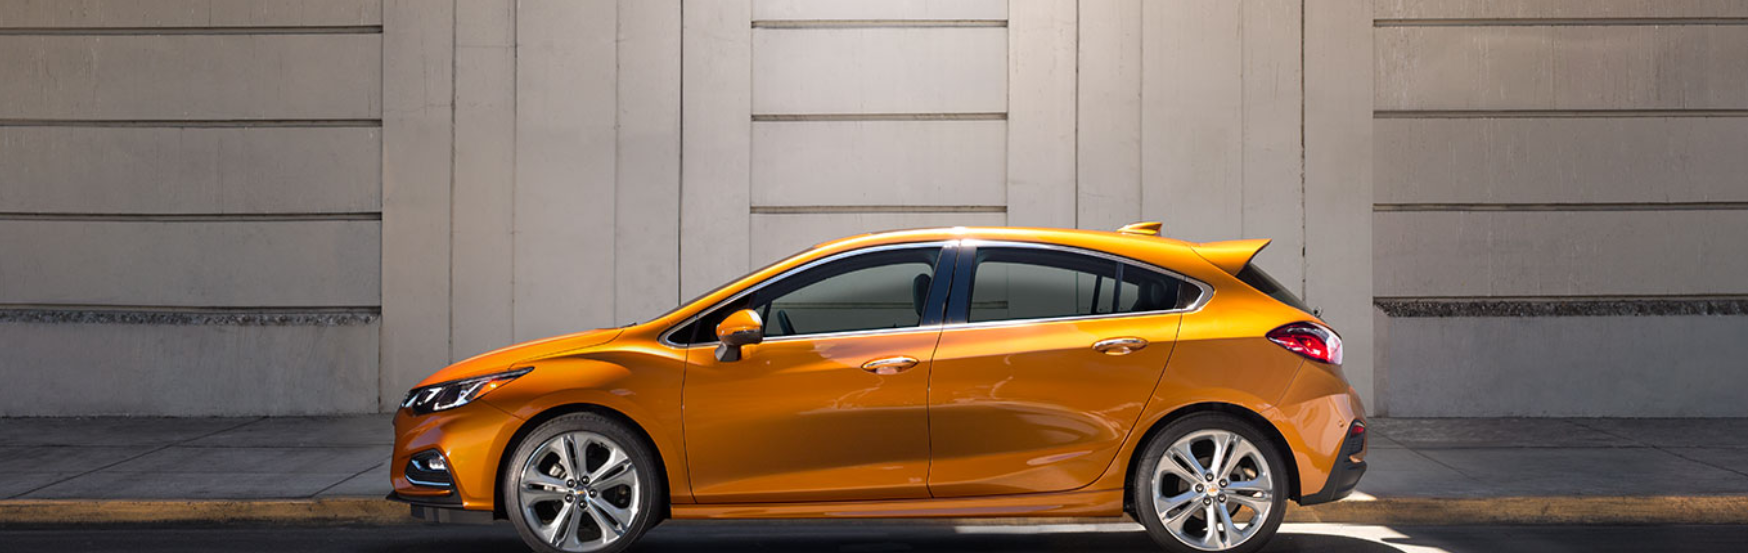 Valley Chevy - Chevrolet Cruze 2017 Comparison - Orange Hatchback